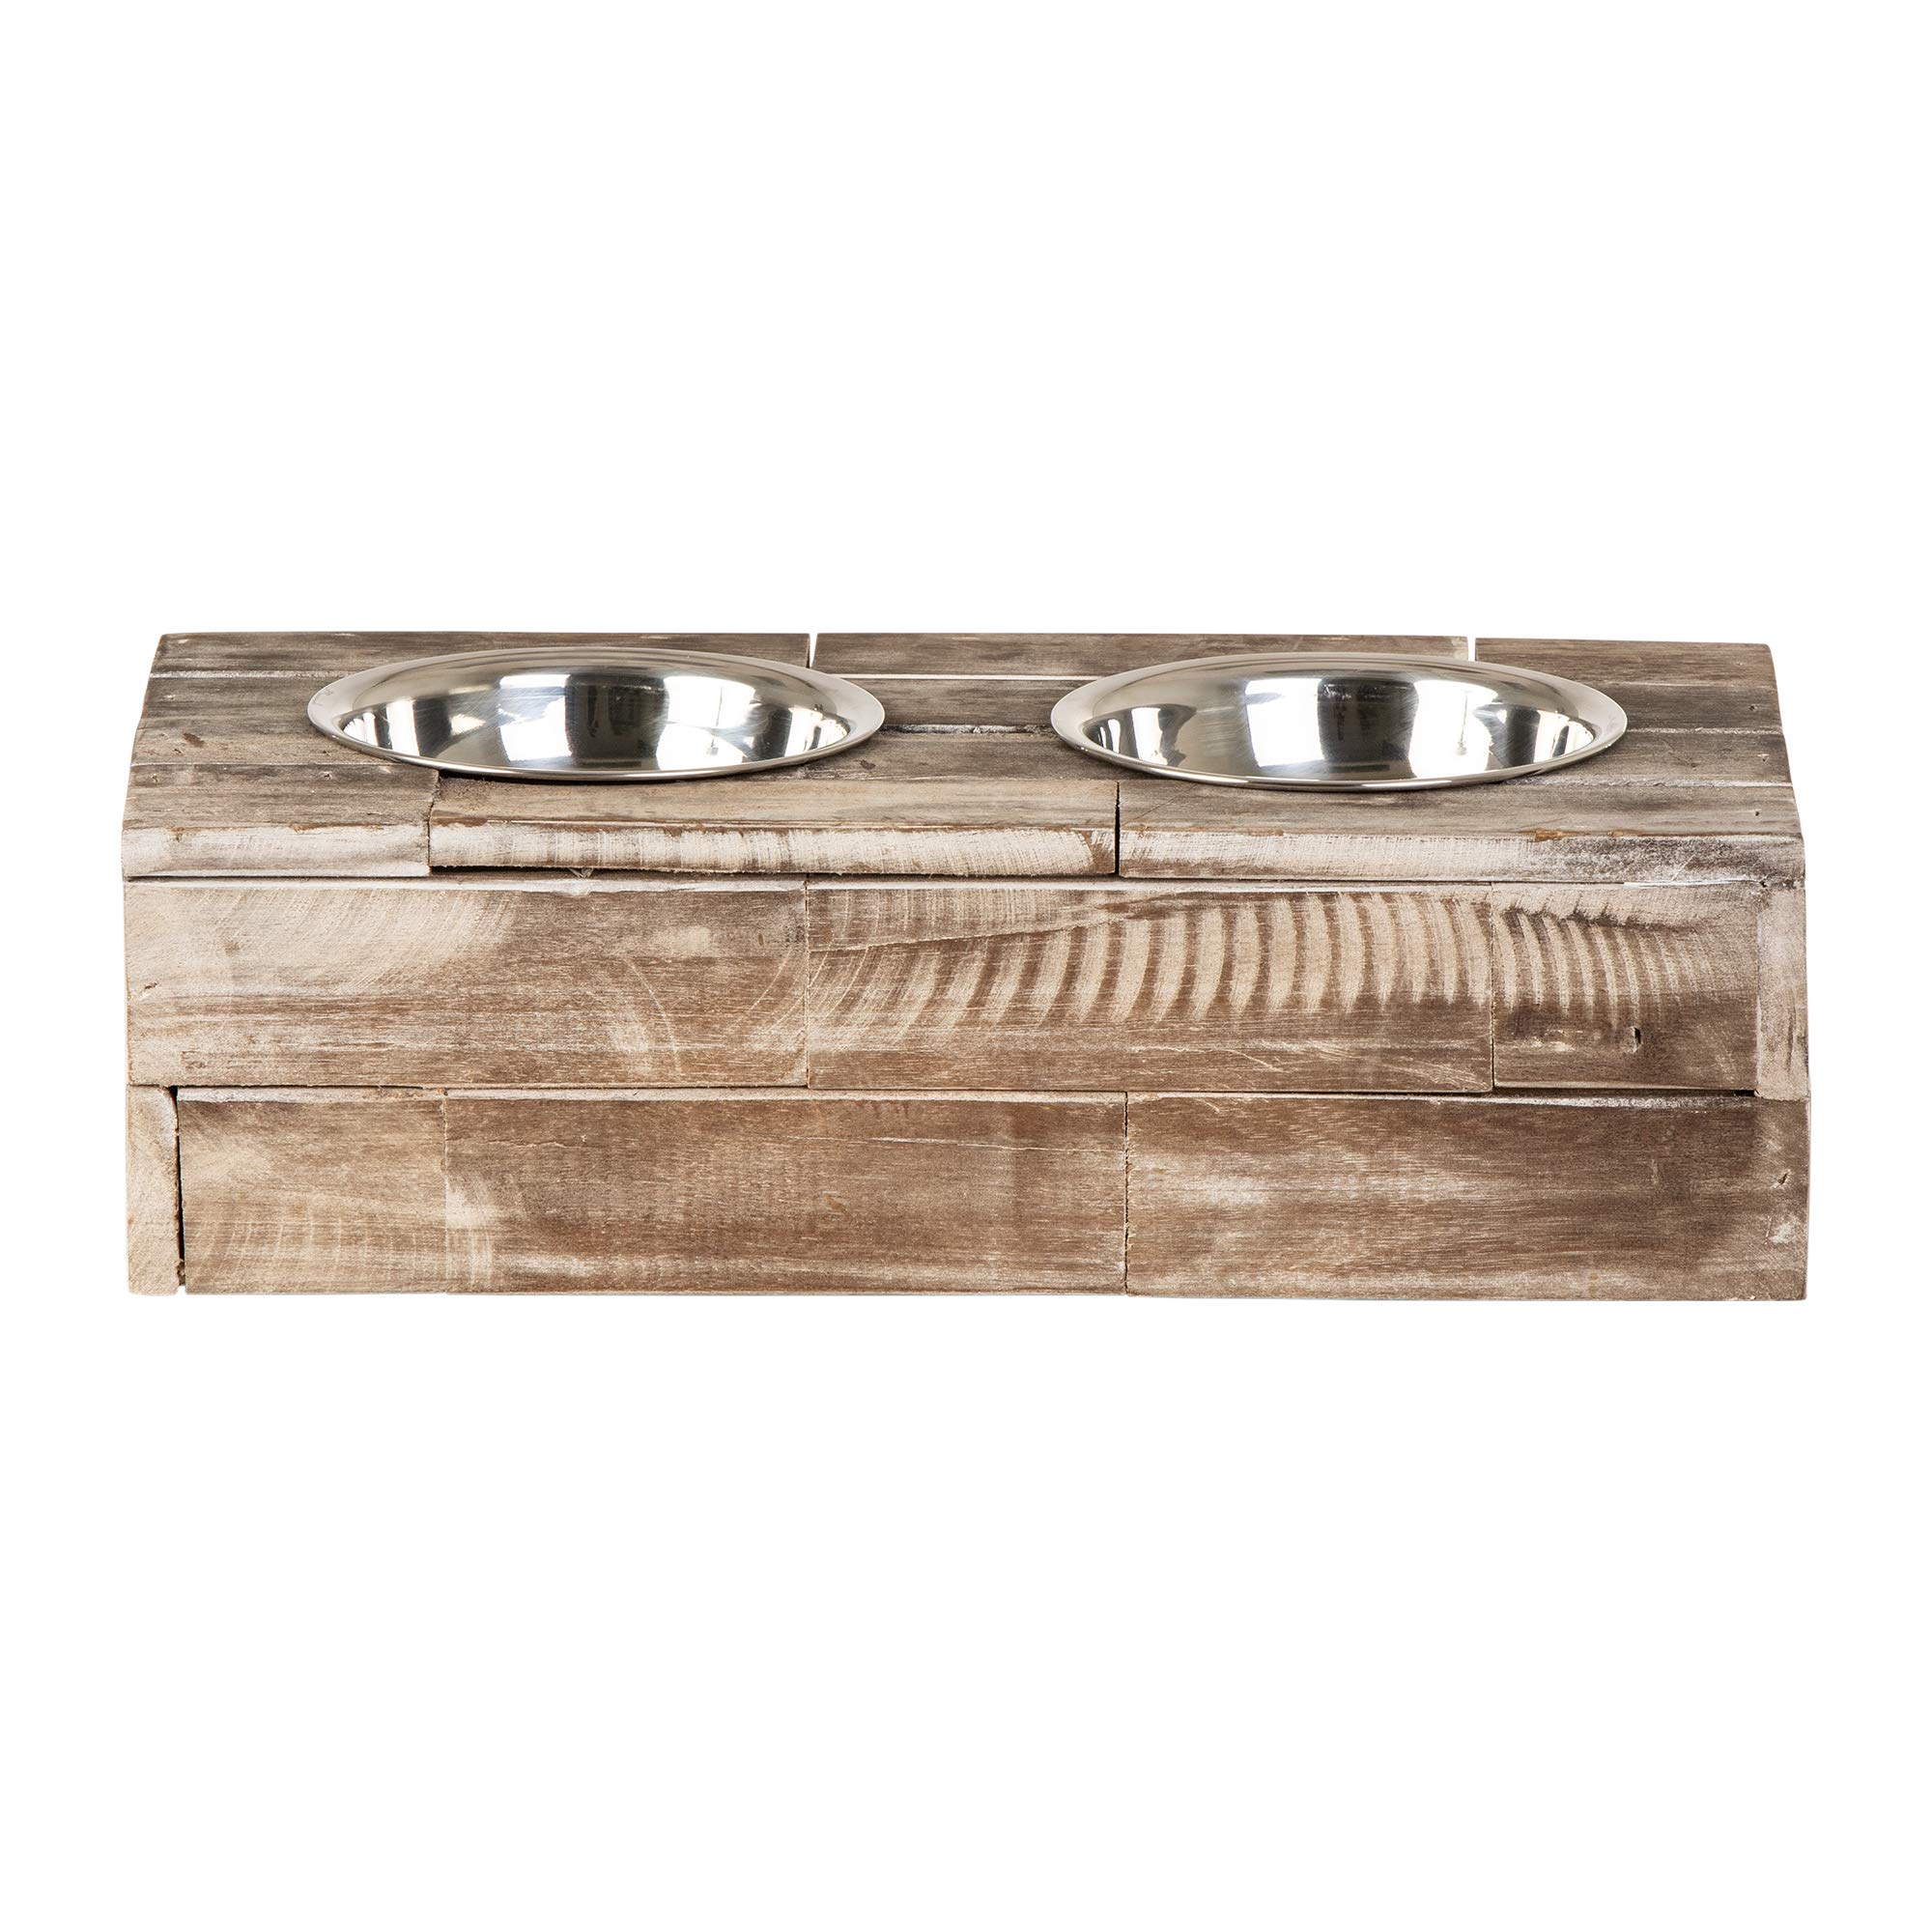 Huntley Pet Elevated Dog & Cat Double Bowl Feeder Stainless Steel Bowls (Berjen, Small) by Huntley Equestrian